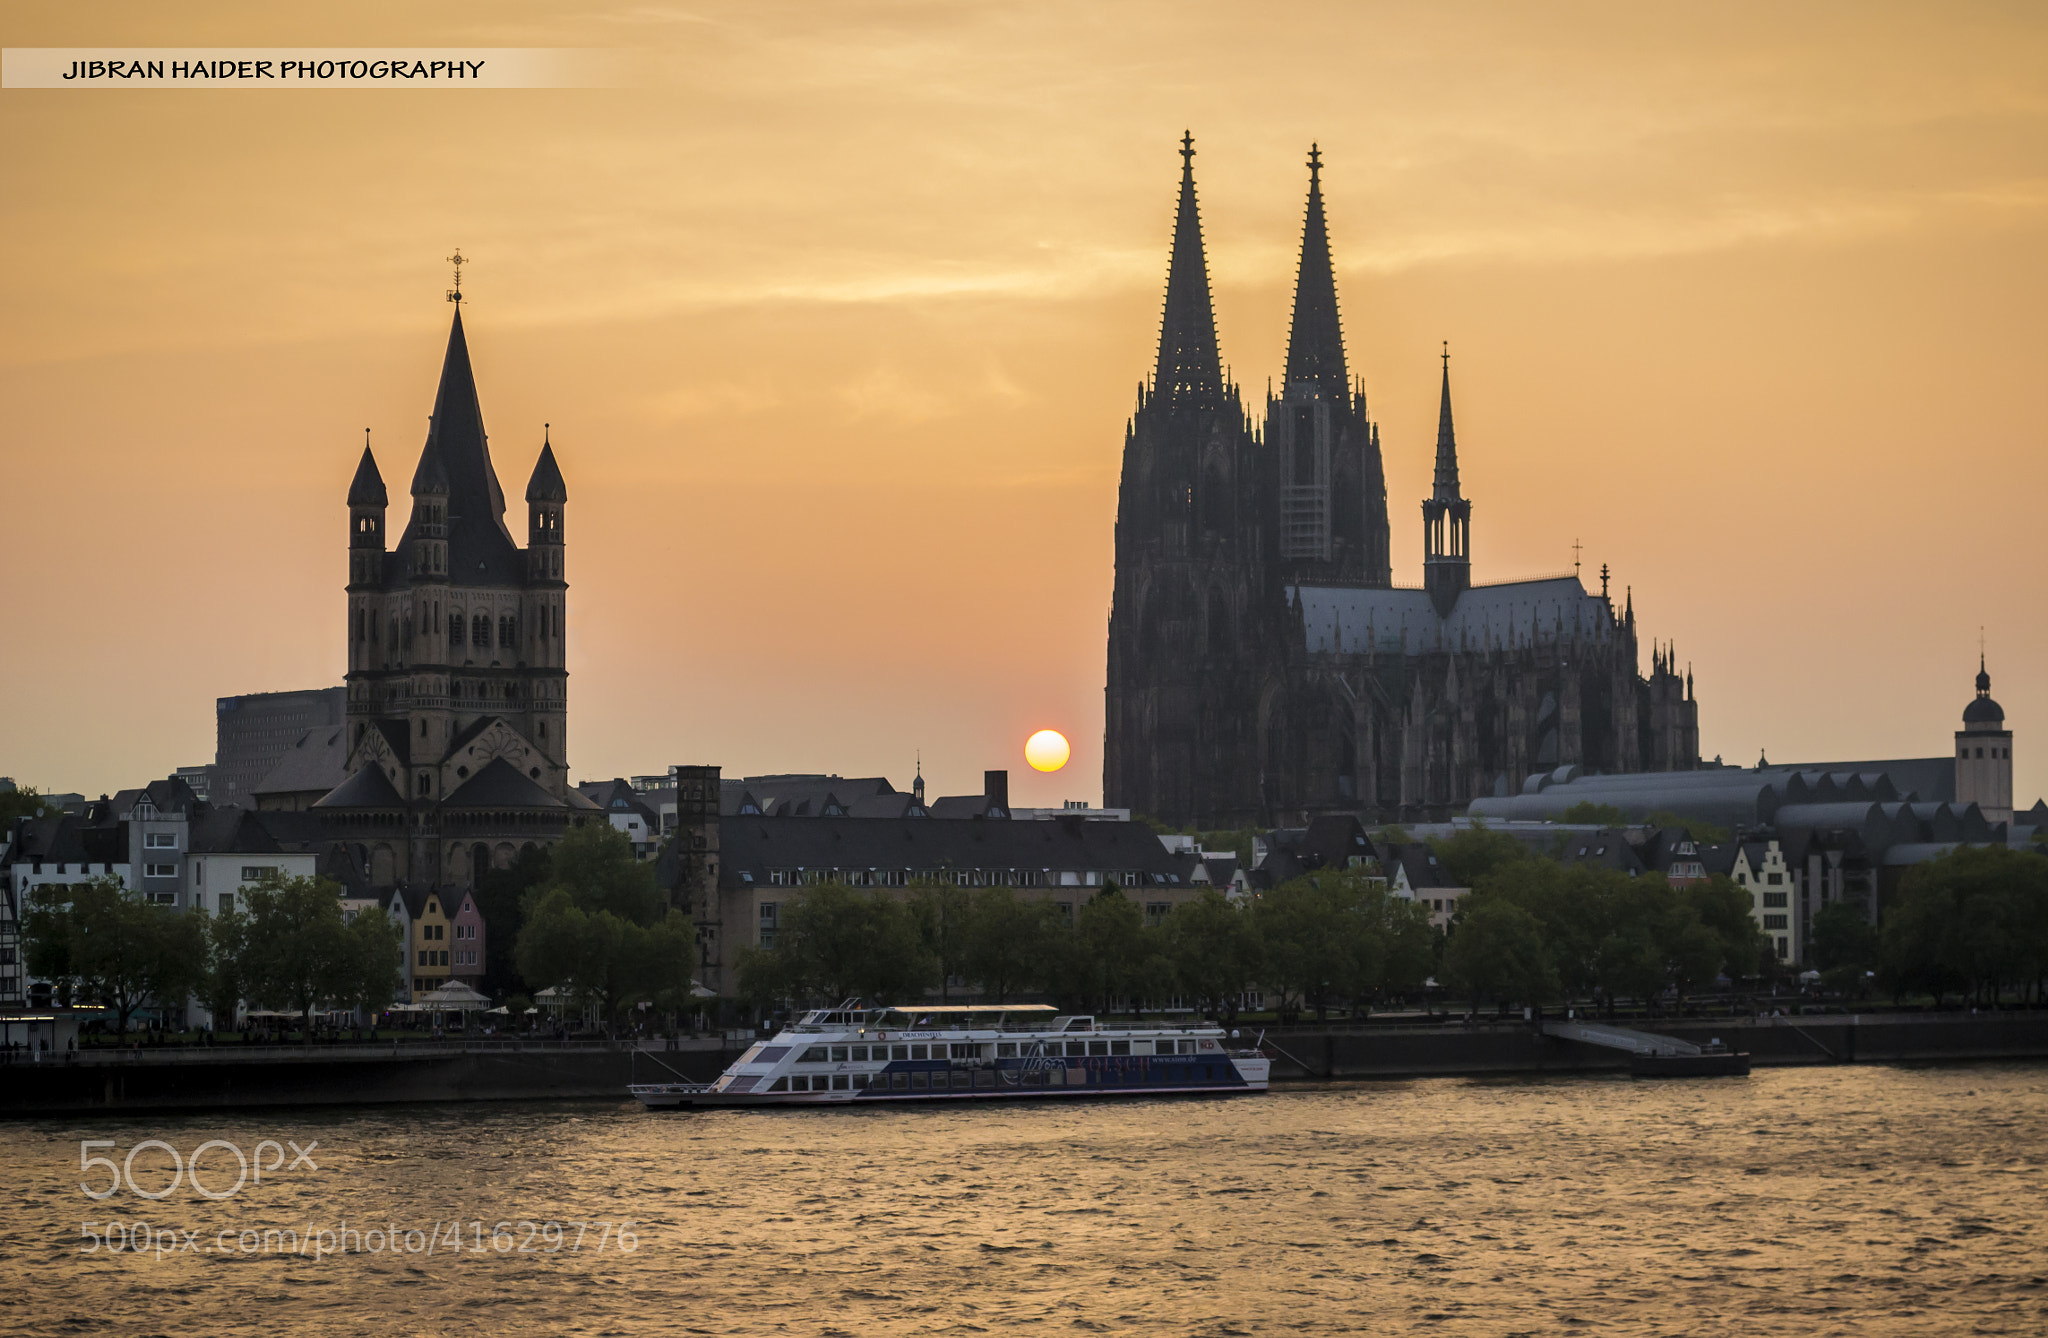 Photograph Cologne at Sunset by Jibran Haider on 500px